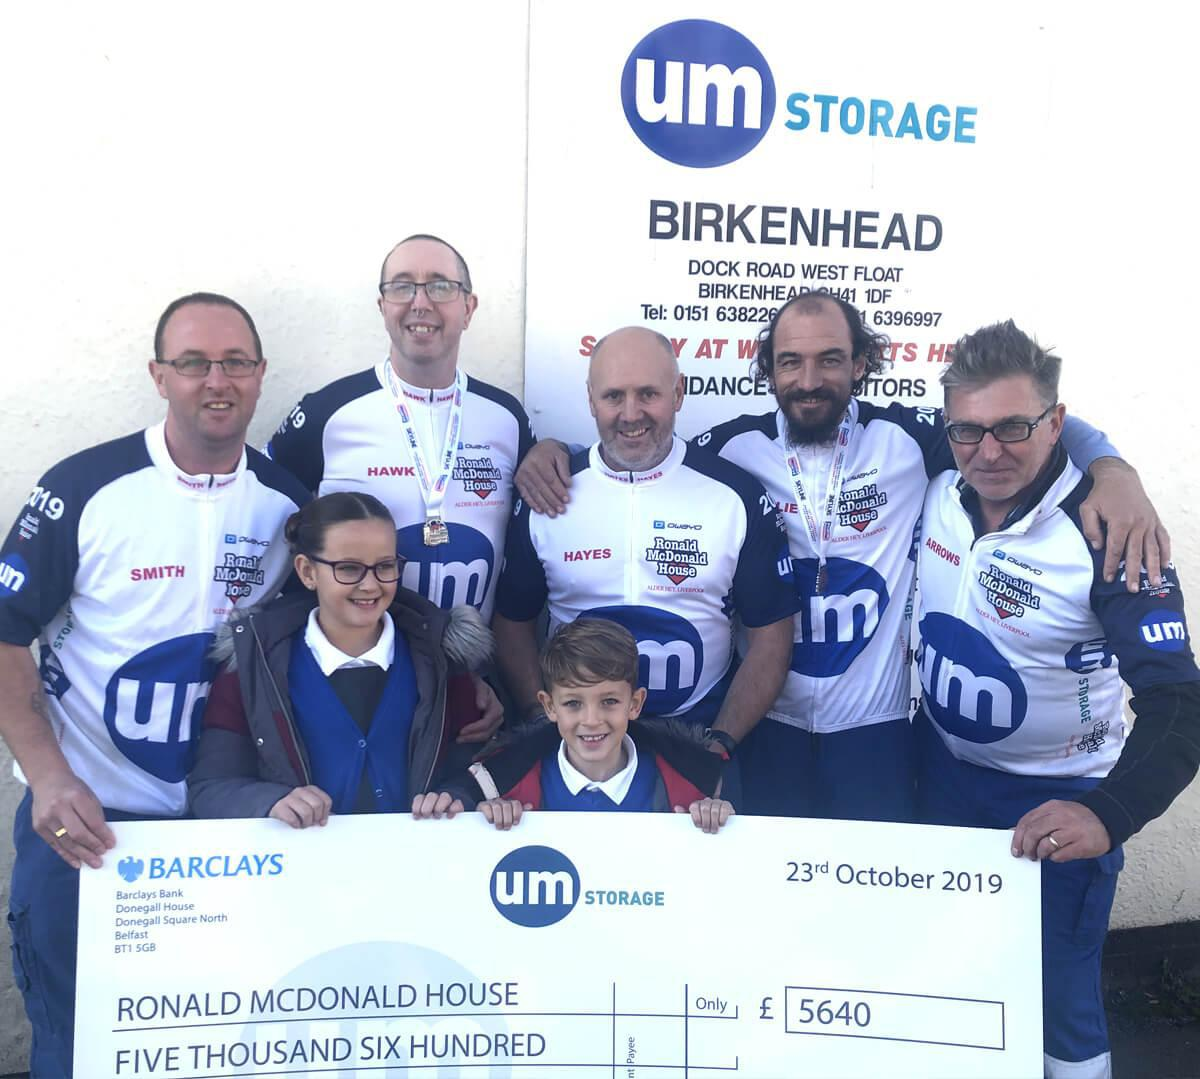 birkenhead-boys-london-to-brighton-cycle-ride-article.jpg#asset:697